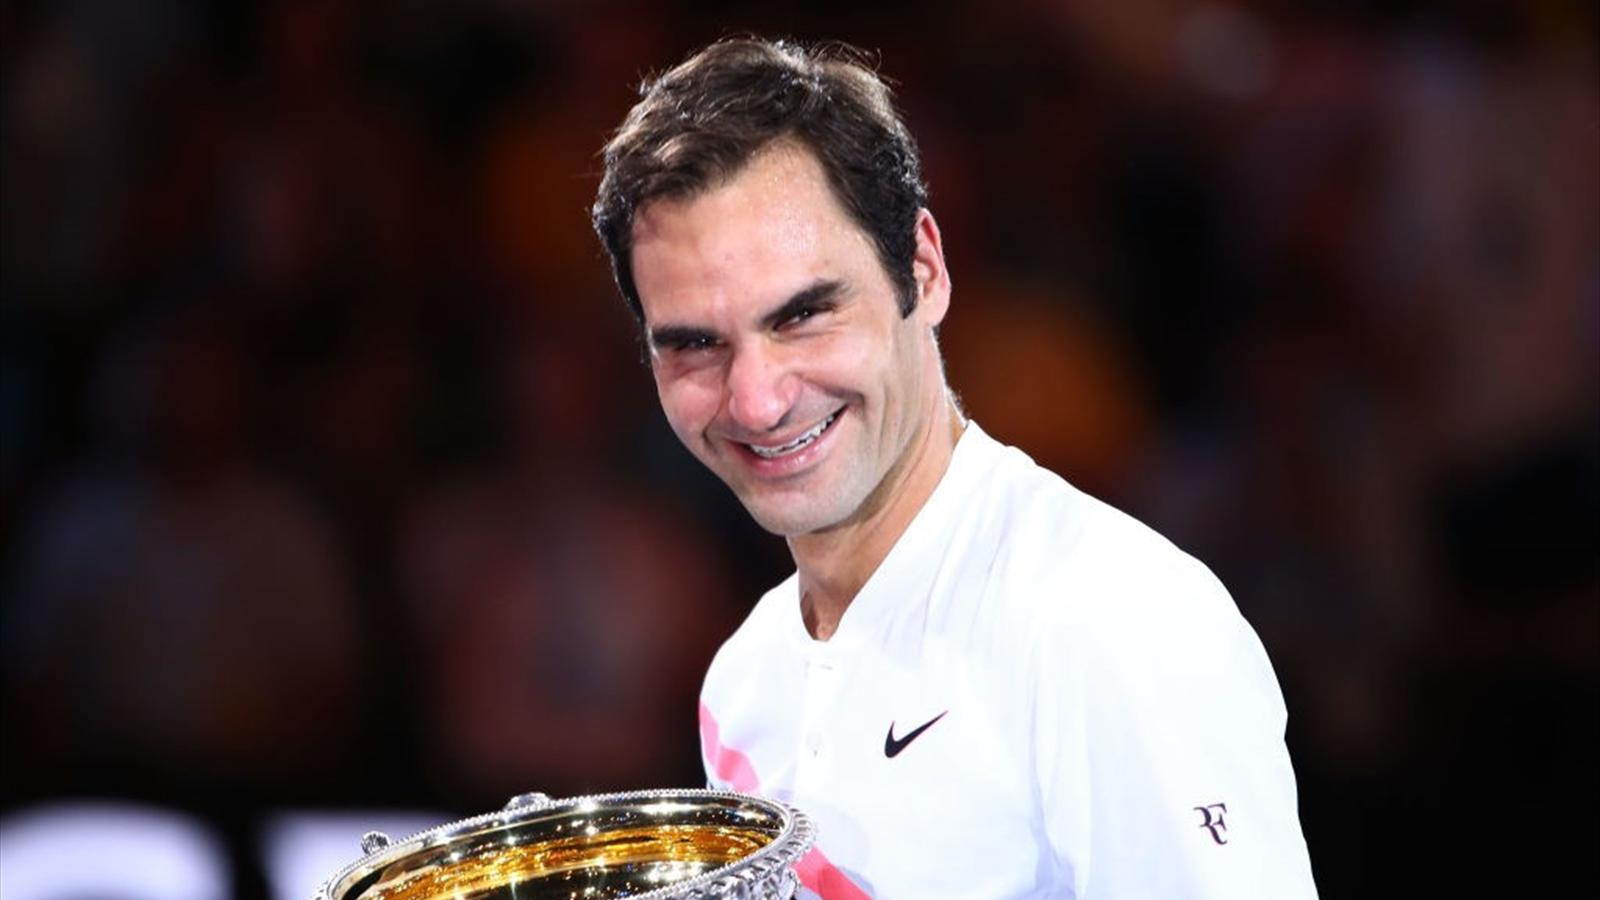 federer Roger federer has been knocked out of the us open in the fourth round by world number 55 john millman the 37-year-old swiss had prioritised winning a sixth title at flushing meadows but was.